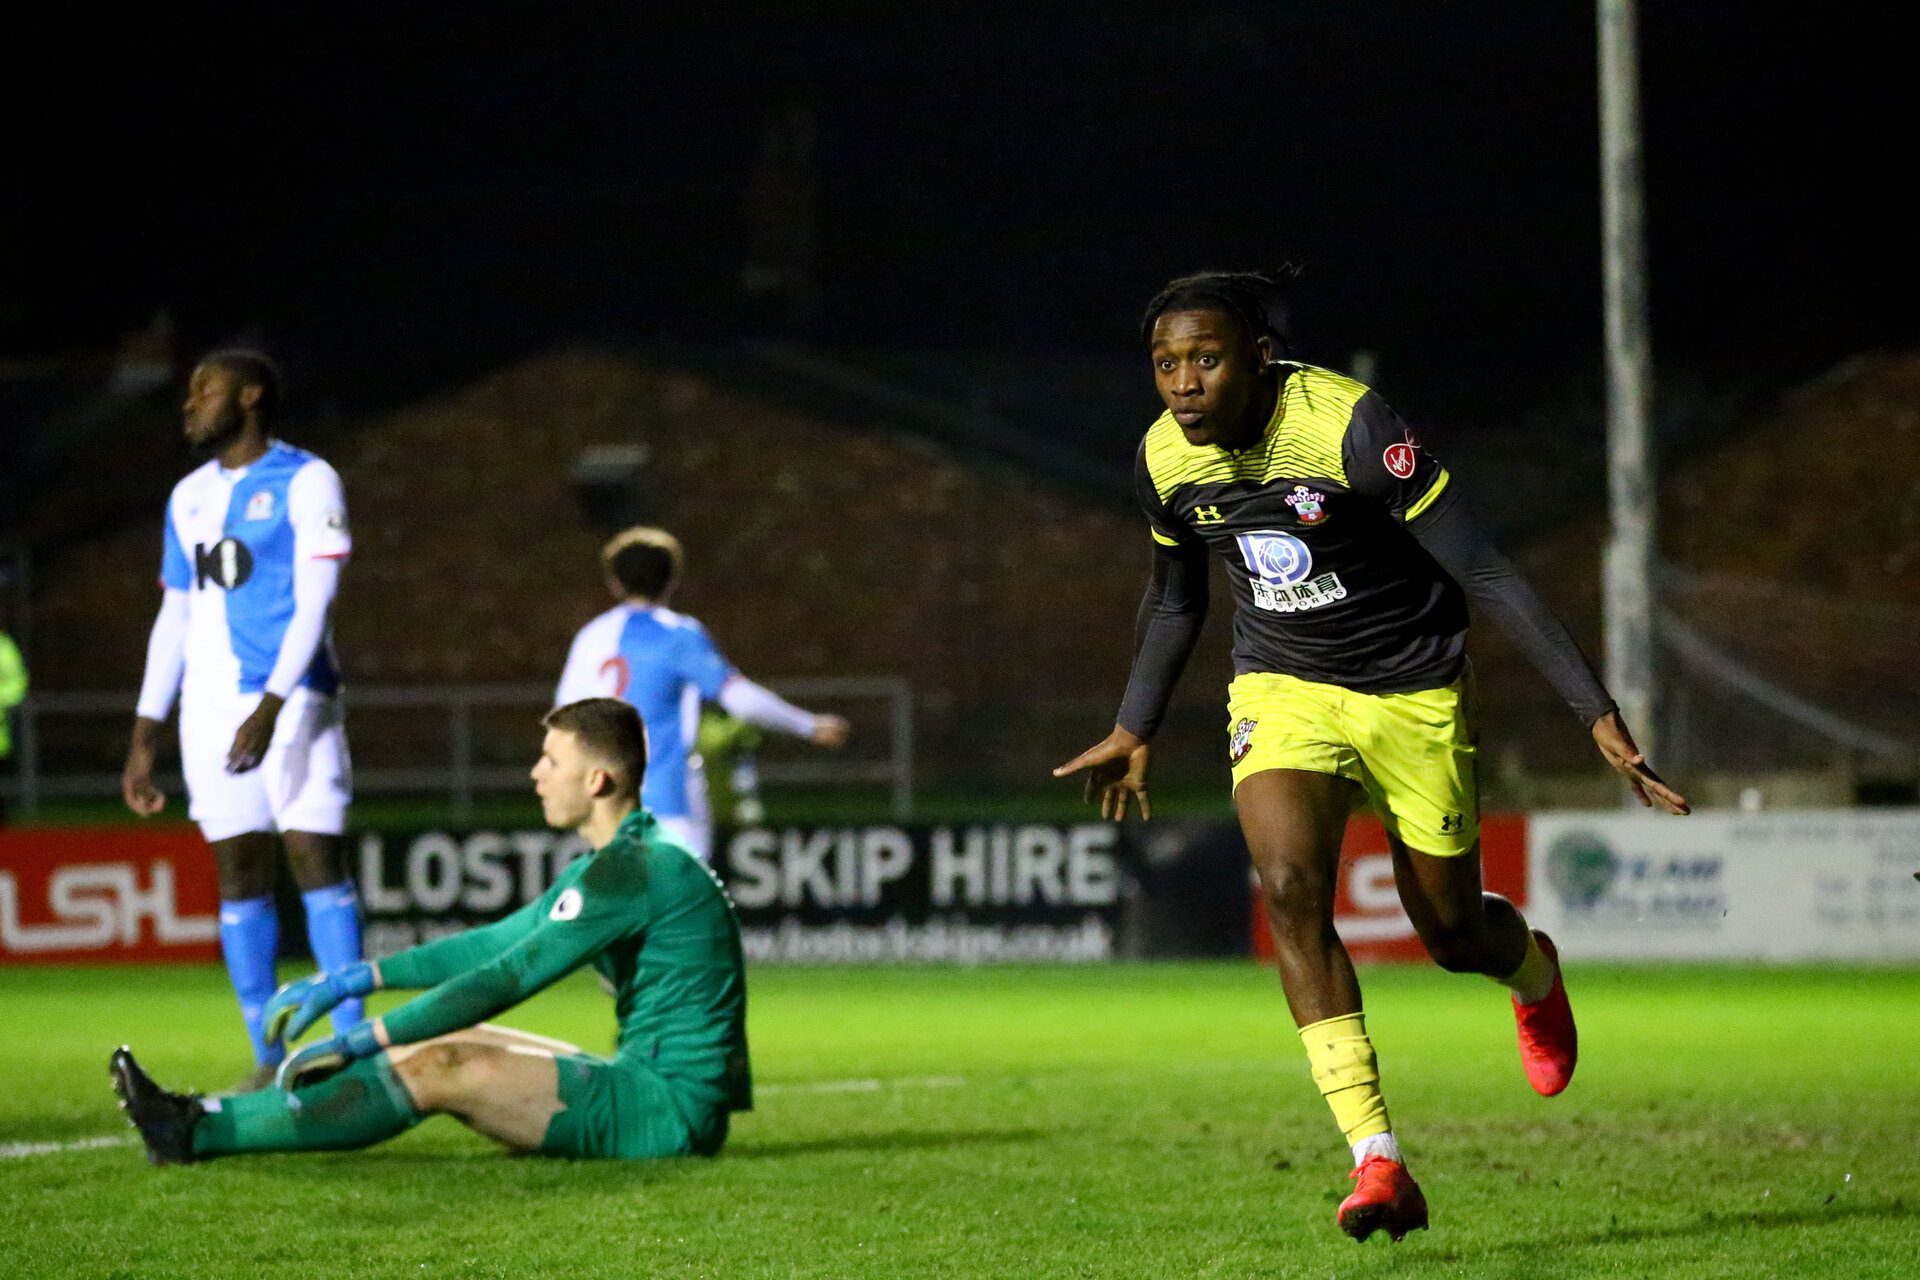 BLACKBURN, ENGLAND - November 27: Dan N'Lundulu of Southampton during PL2 match between Blackburn and Southampton at Lancashire County FA on February 14 2020, in Blackburn  (Photo by Isabelle Field/Southampton FC via Getty Images)